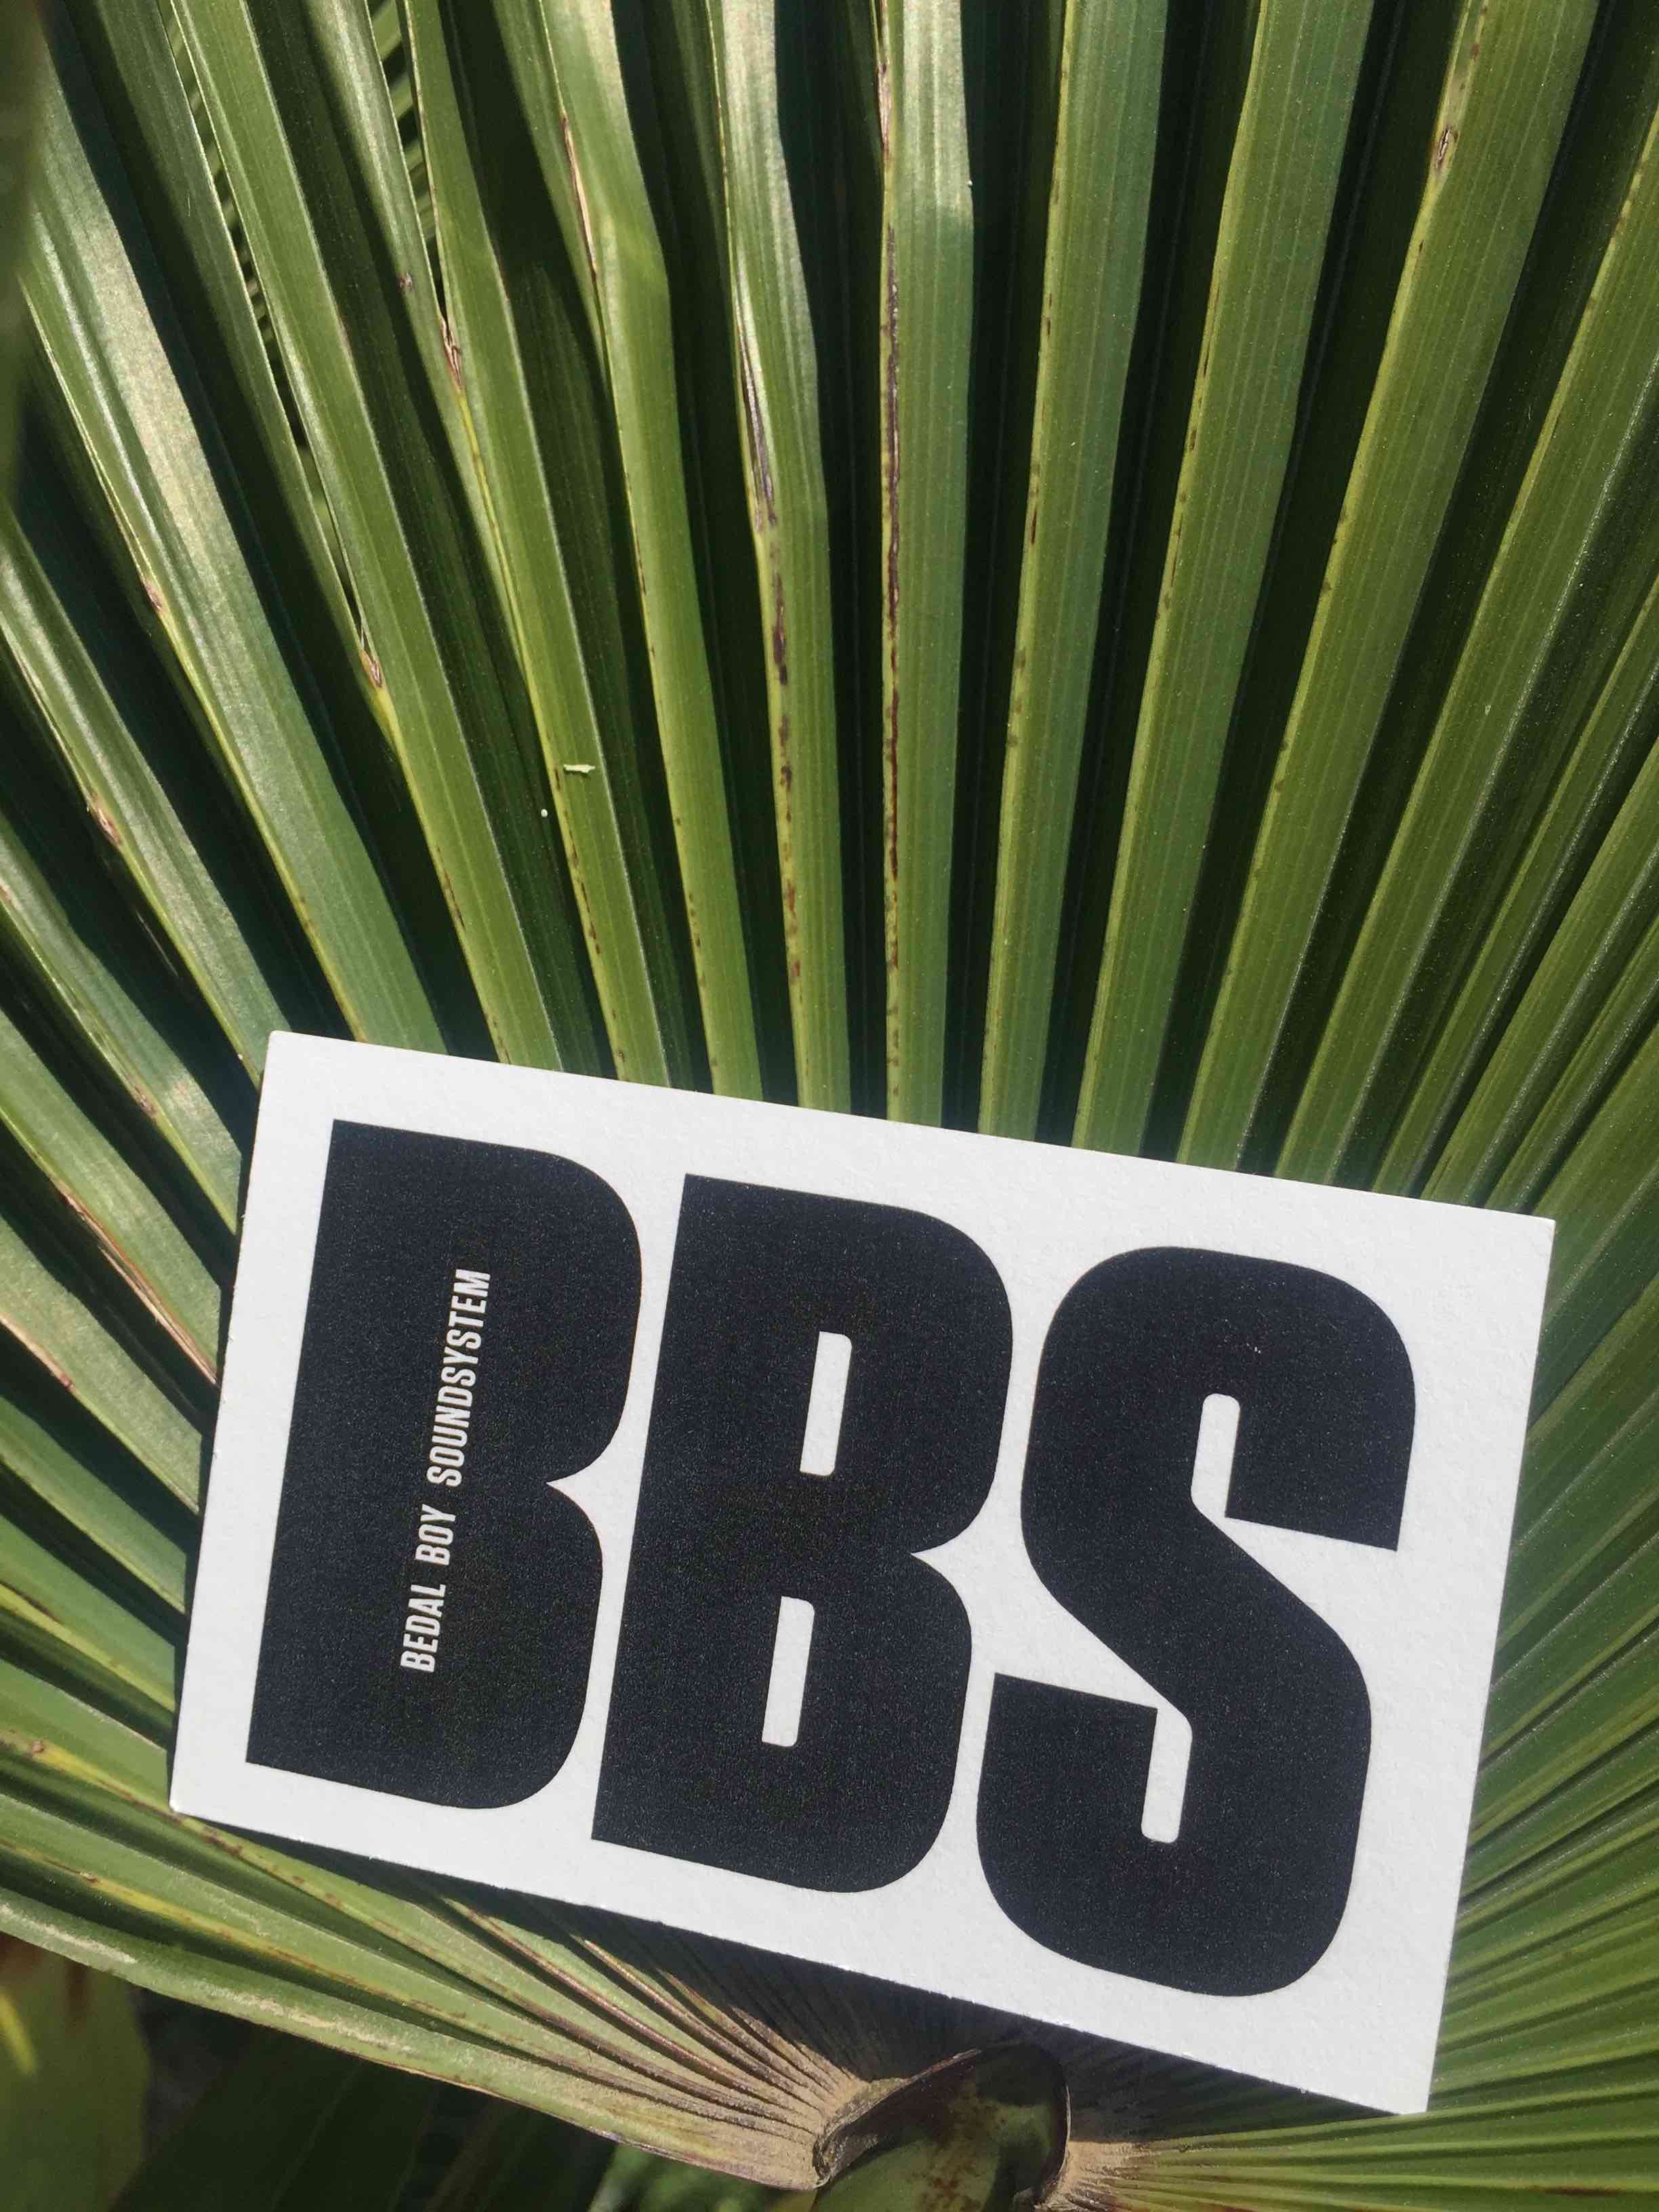 BBS logo on palm leaf